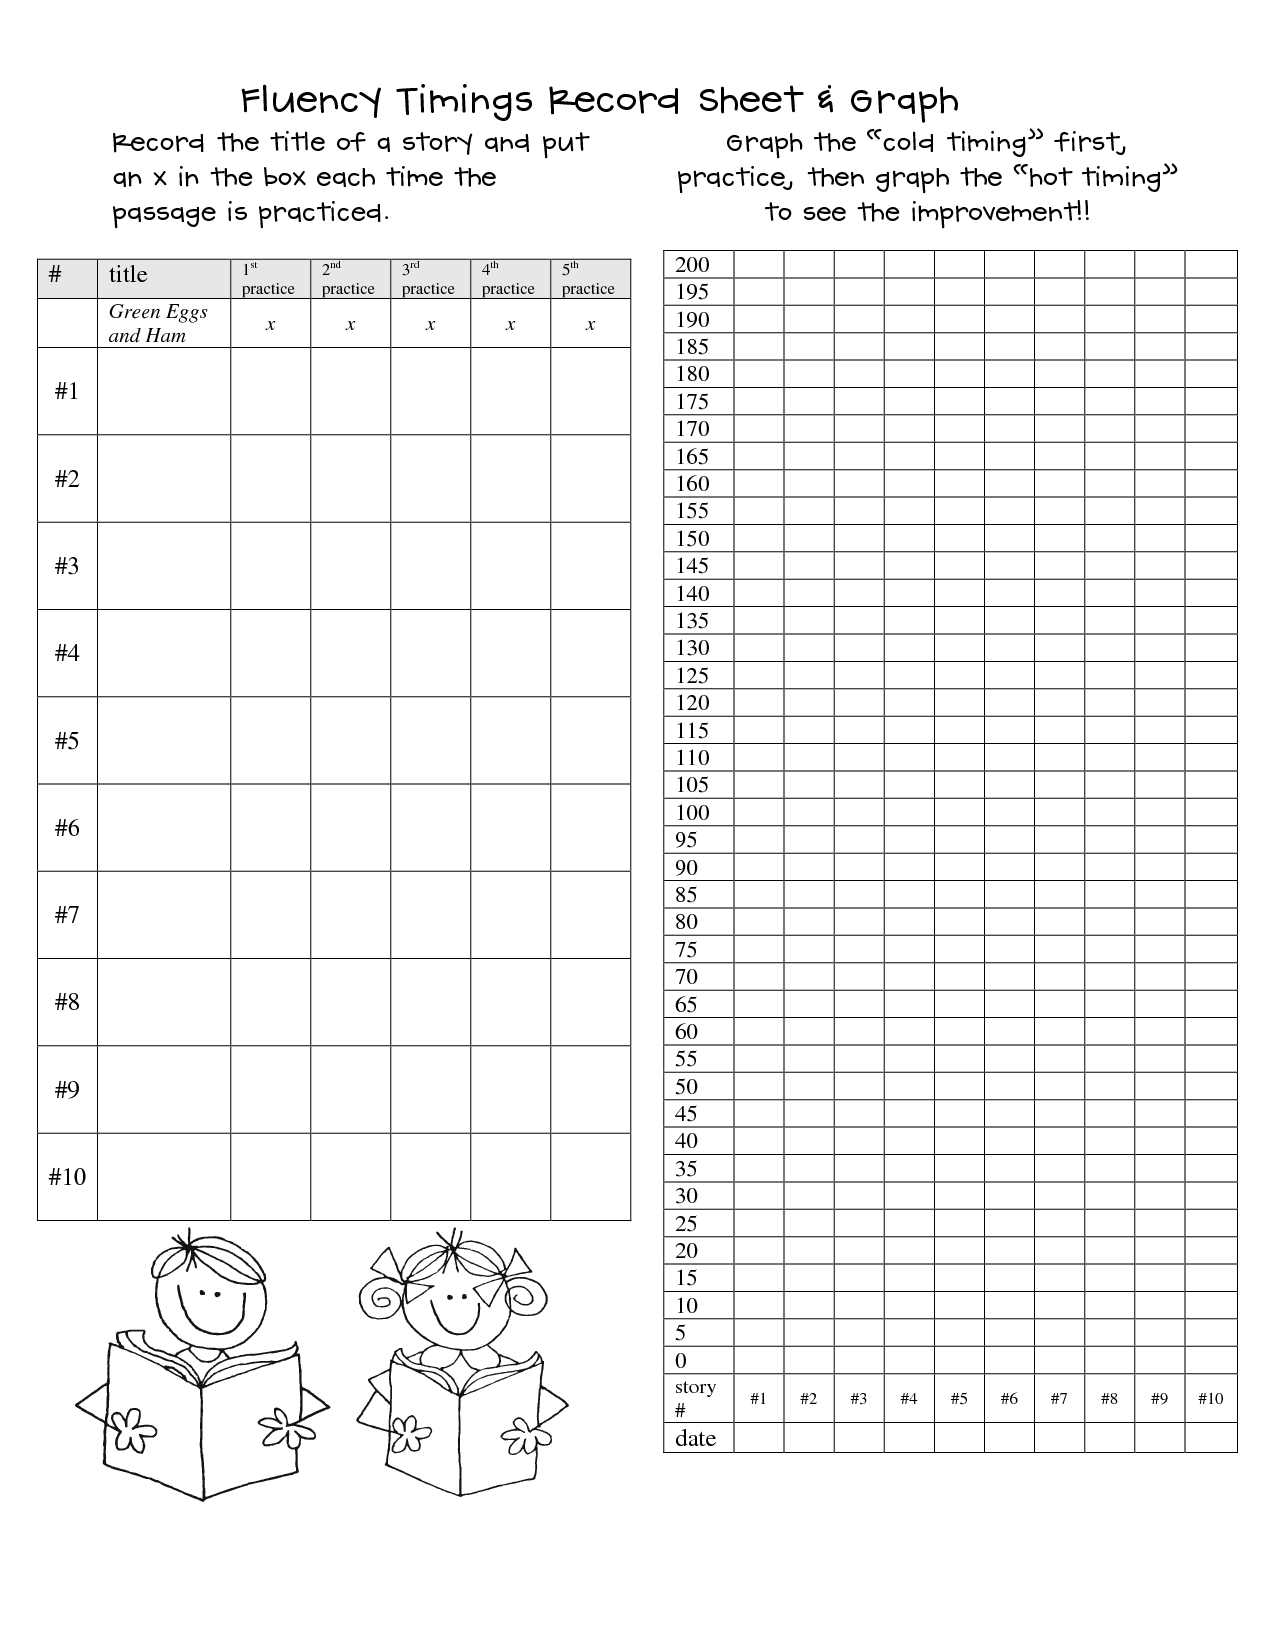 image about Fluency Graph Printable known as Looking through+Fluency+Graph+Printable do it yourself home furniture makeover